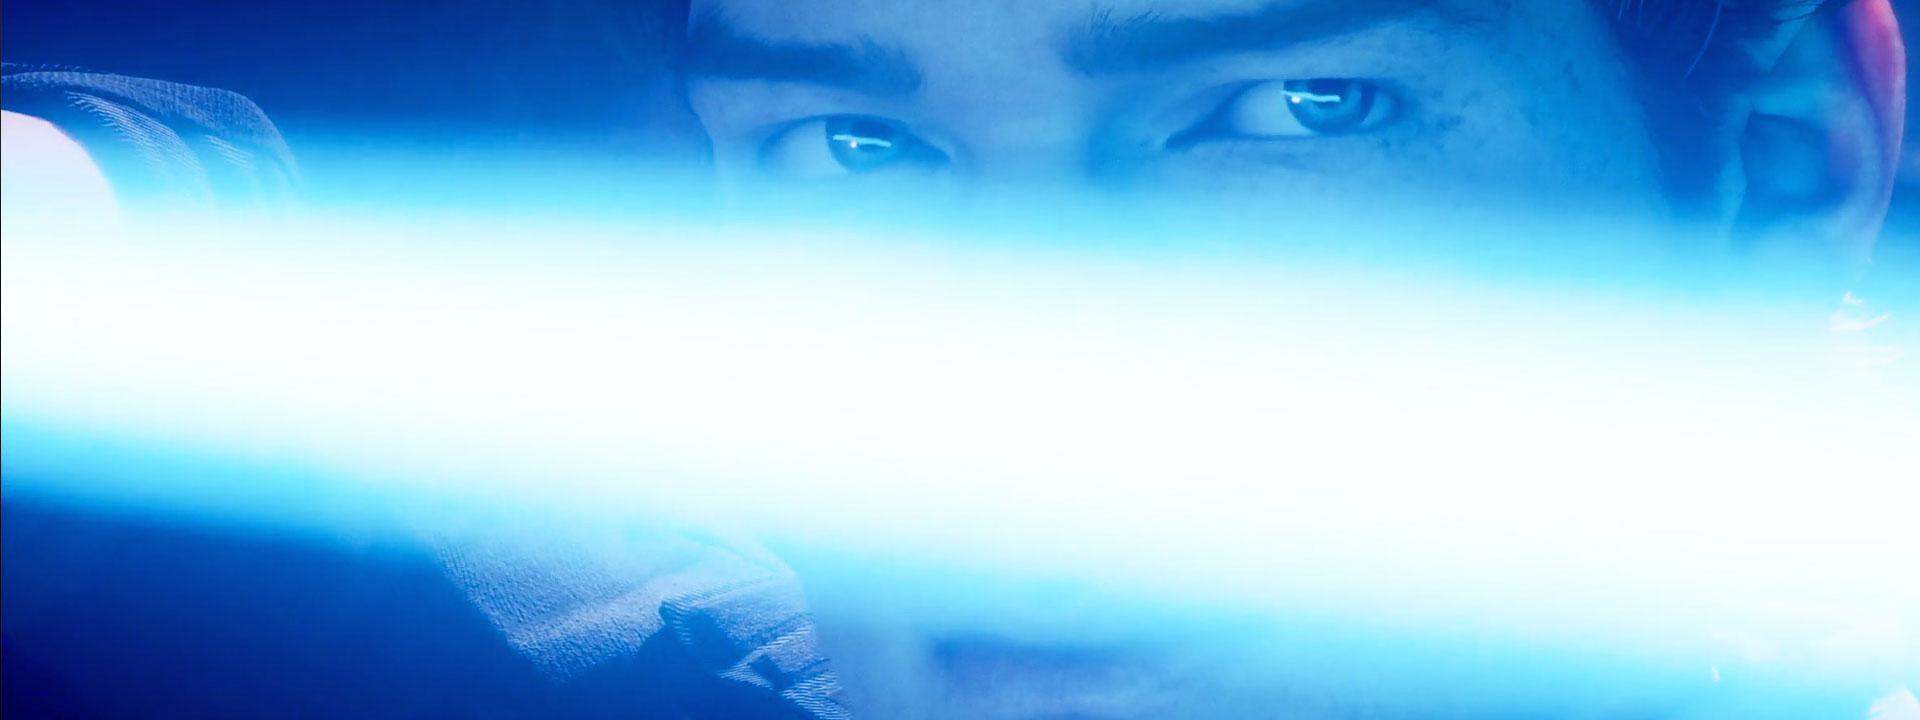 Close up of Cal Kestis holding a lightsaber in front of his face